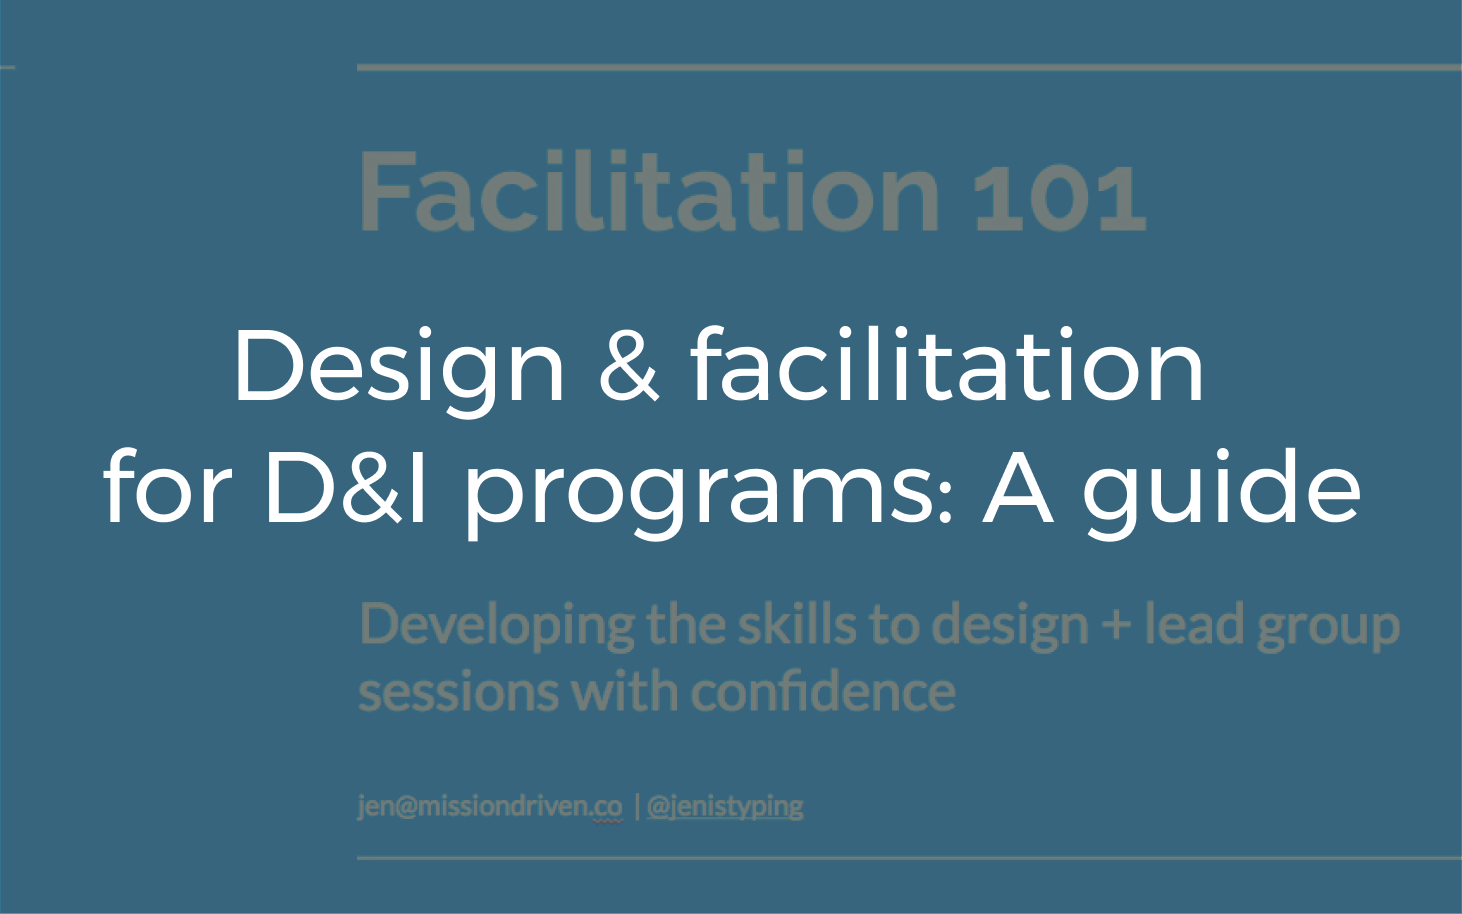 Training I designed and gave to D&I taskforce members to impart the tools and confidence to lead.